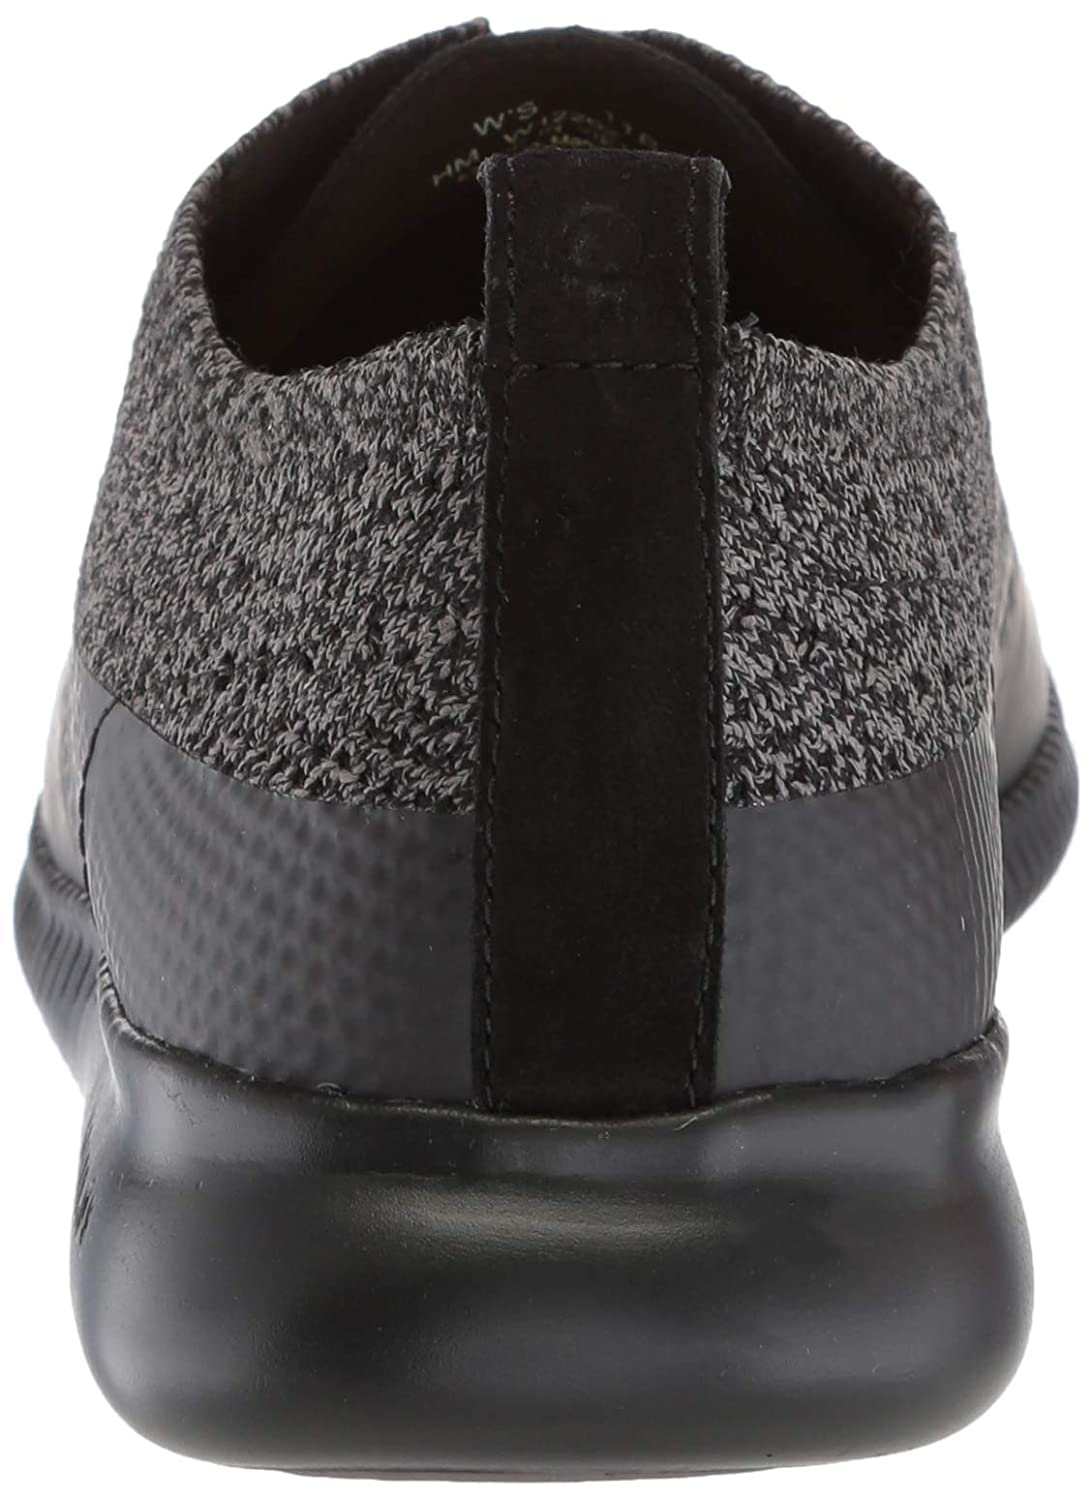 Cole Haan Womens 2.Zerogrand Stitchlite Sneaker Water Resistant Sneakers